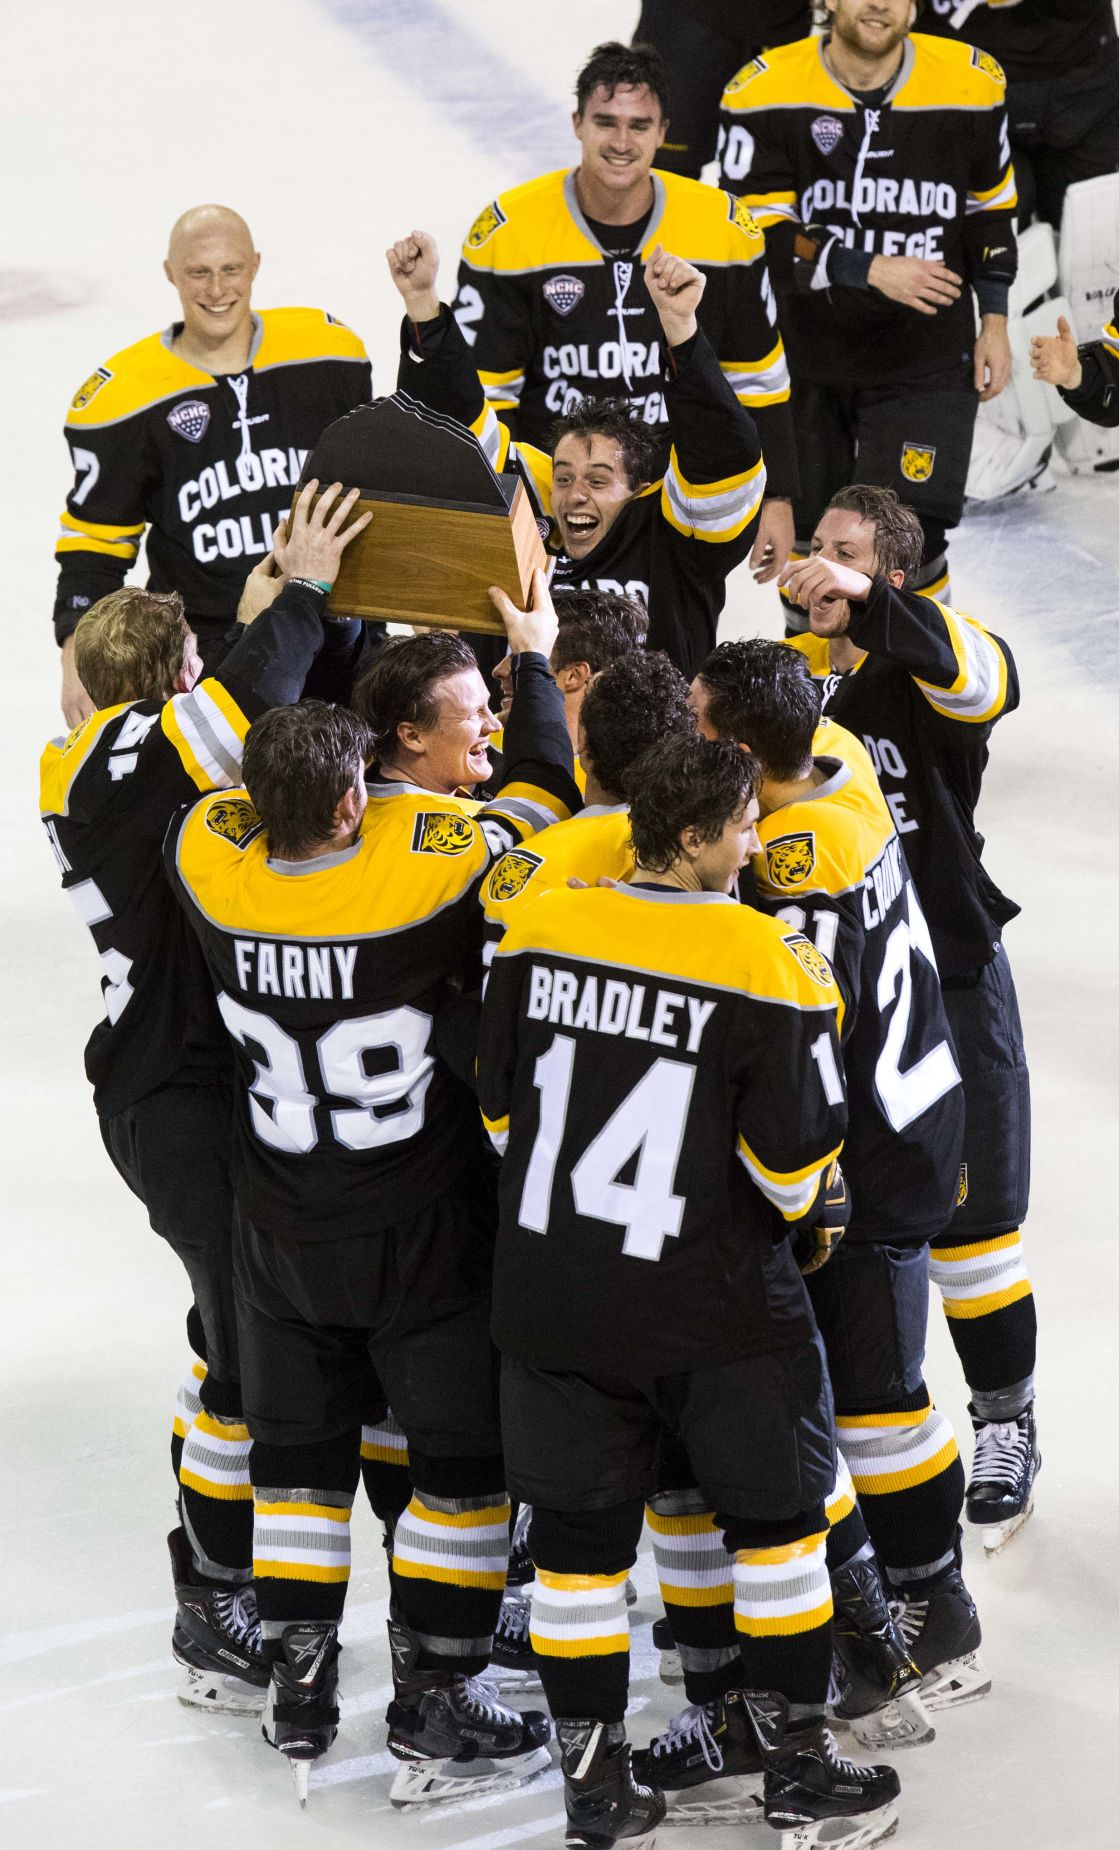 Colorado College Players Take Good Care Of Pikes Peak Trophy